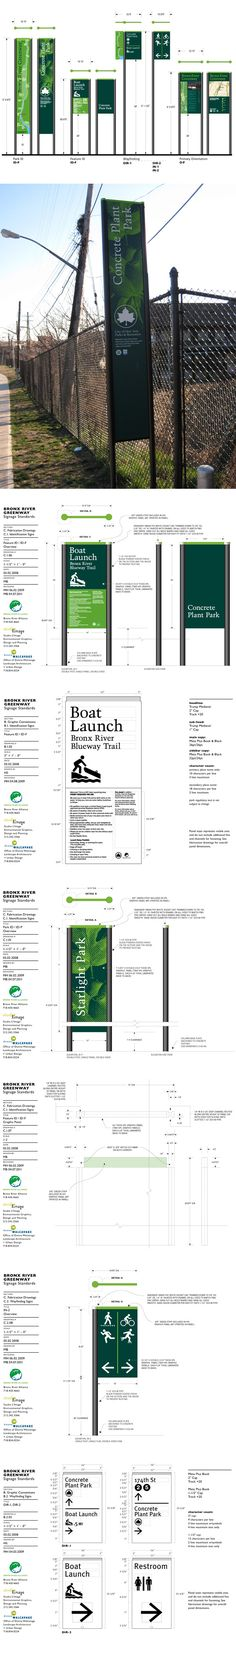 Dimensions and other design standards -- Bronx River Greenway Signage by Michael Benvenga, via Behance Signage Board, Park Signage, Signage Display, Signage Design, Environmental Graphic Design, Environmental Graphics, Wayfinding Signs, Exterior Signage, Exterior Design